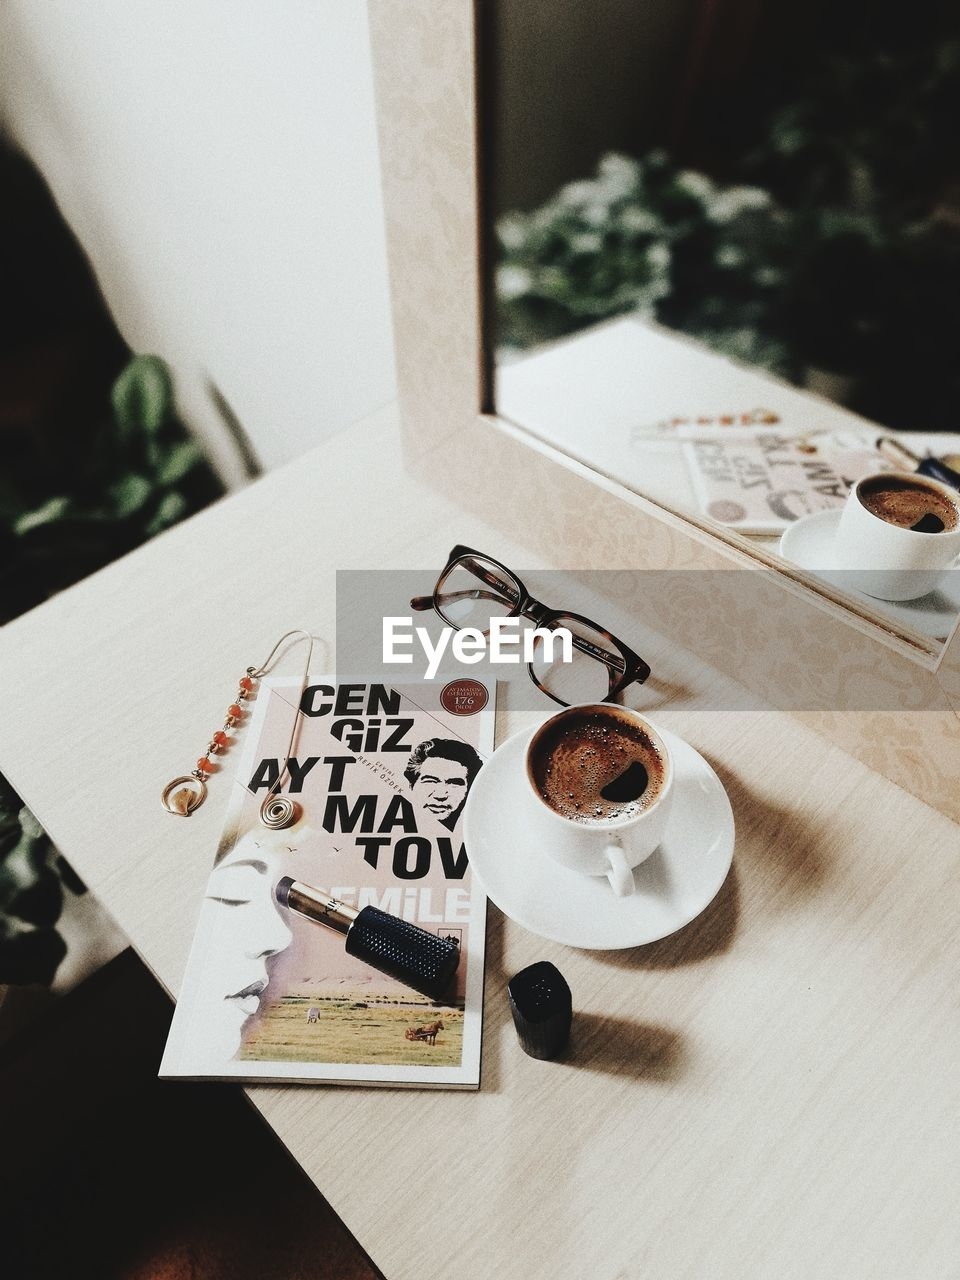 HIGH ANGLE VIEW OF TEXT ON COFFEE CUP